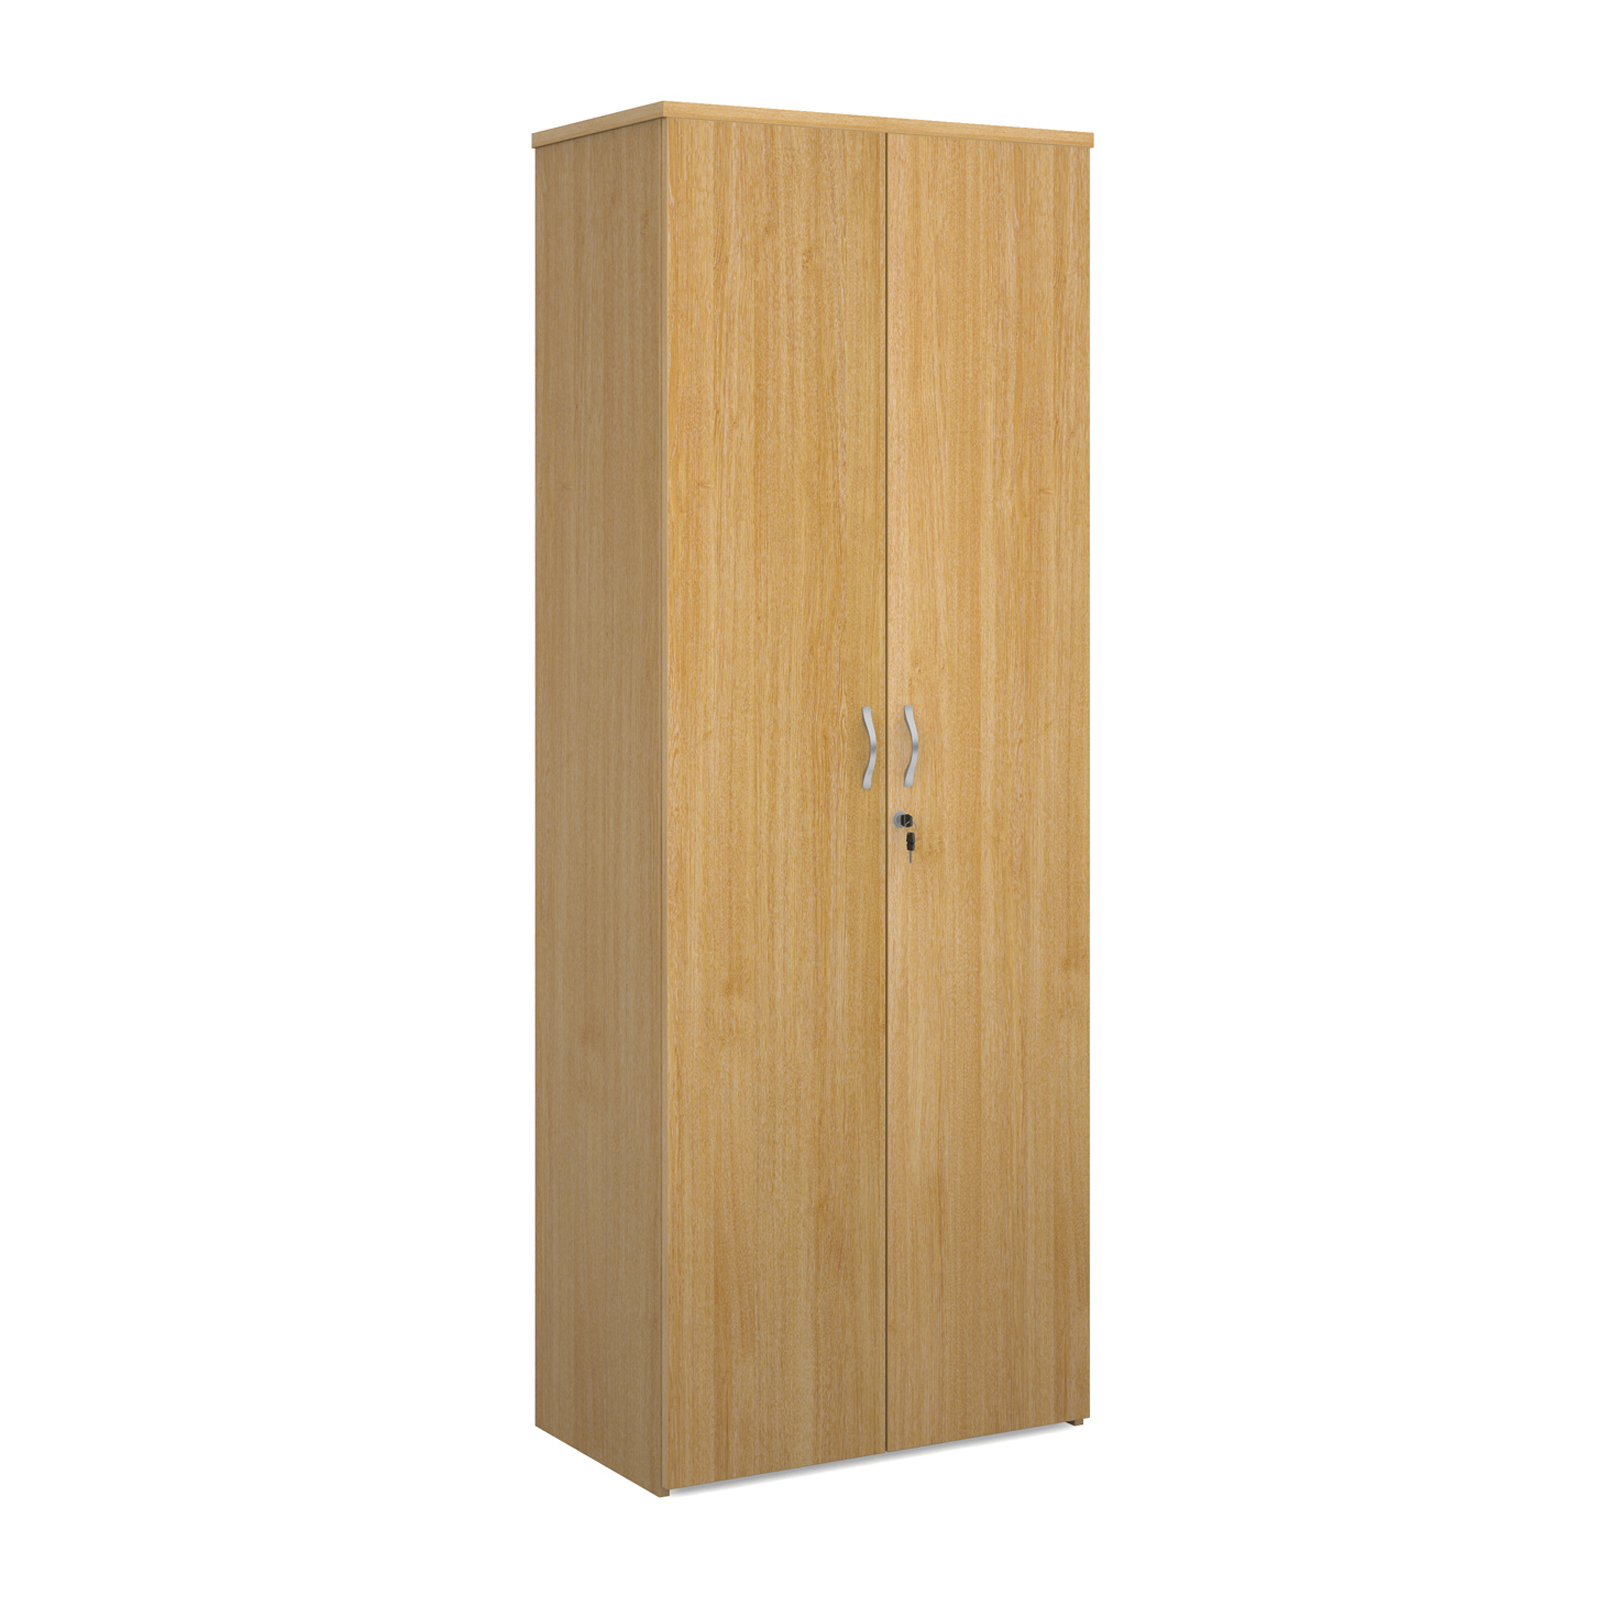 Universal double door cupboard 2140mm high with 5 shelves - oak